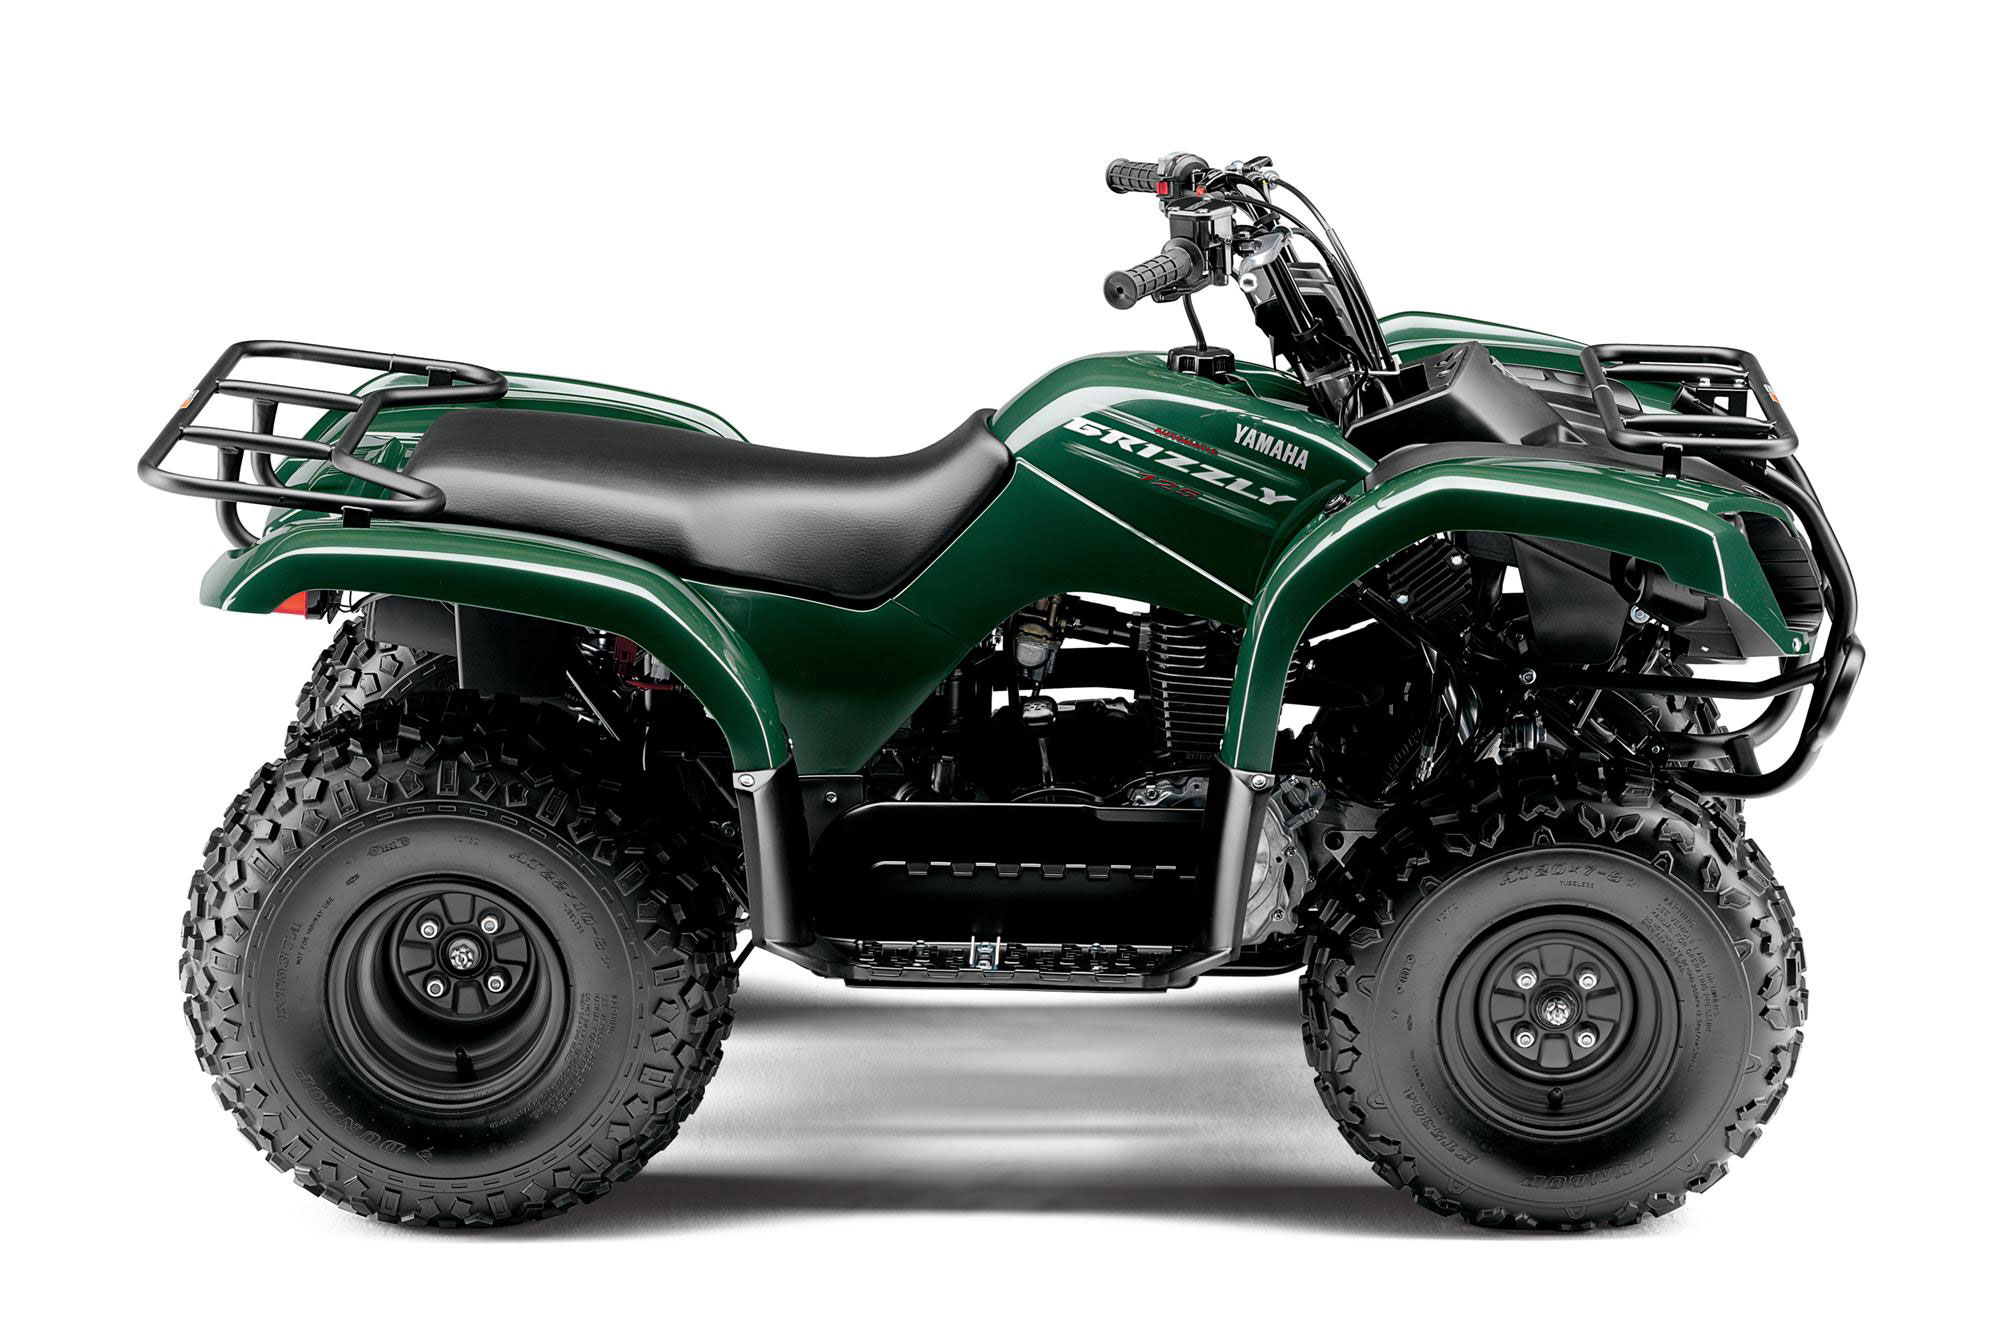 2013 yamaha grizzly 125 automatic review